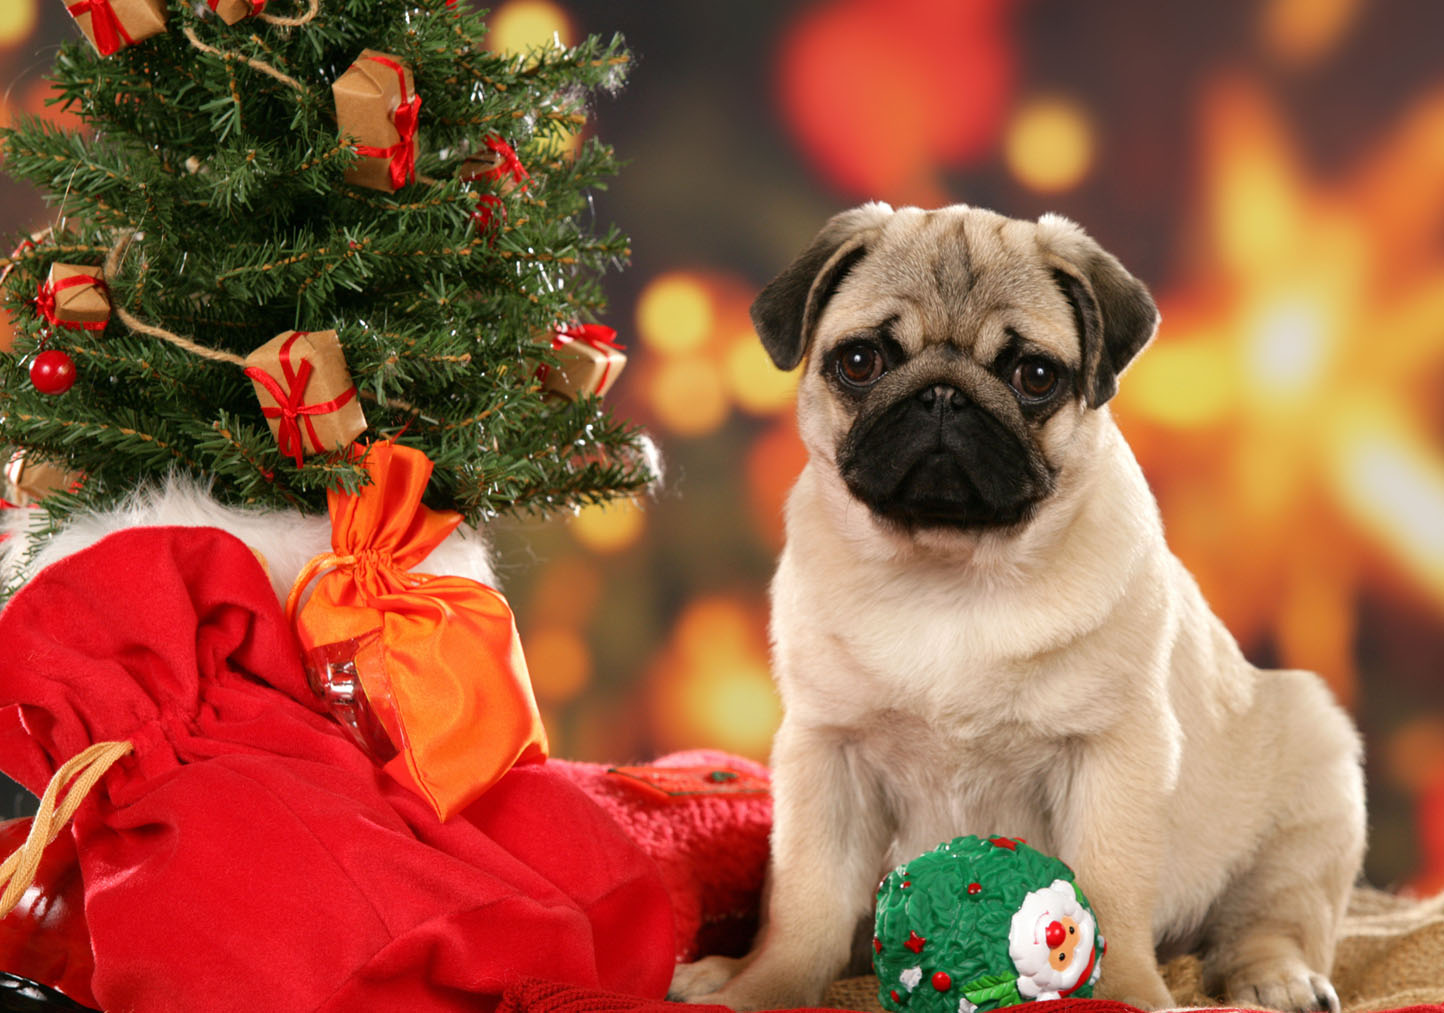 Christmas Pug Wallpaper   The Dog Wallpaper   Best The Dog Wallpaper 1444x1013